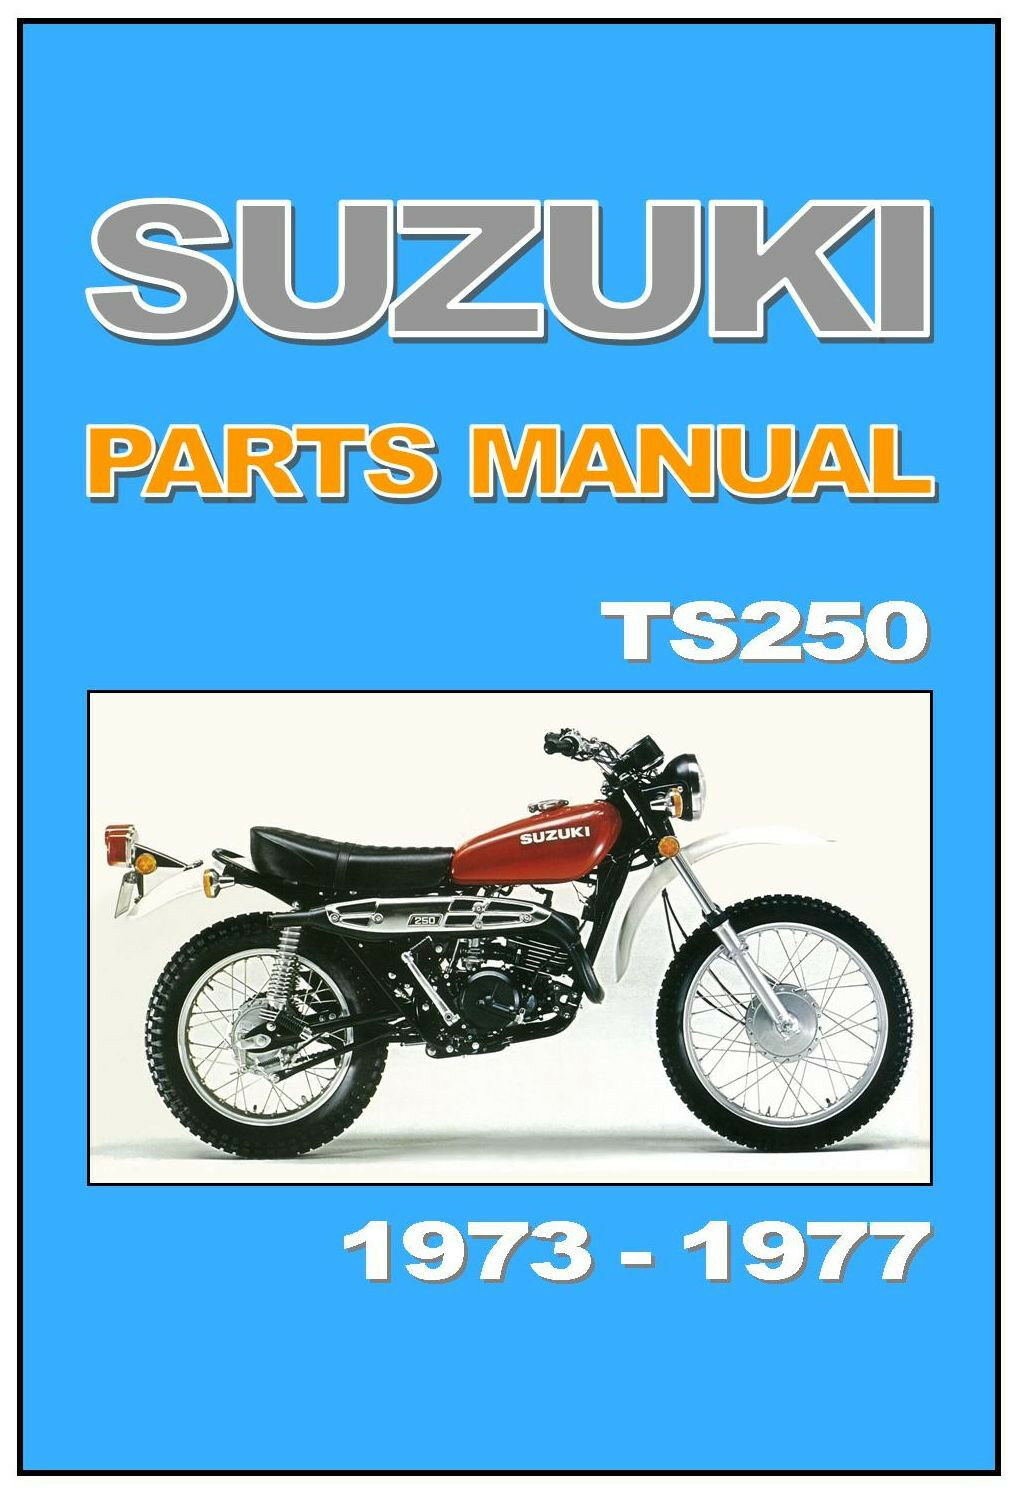 SUZUKI Parts Manual TS250 1973 1974 1975 1976 & 1977 Replacement Spares  Catalog 1 of 1Only 1 available ...